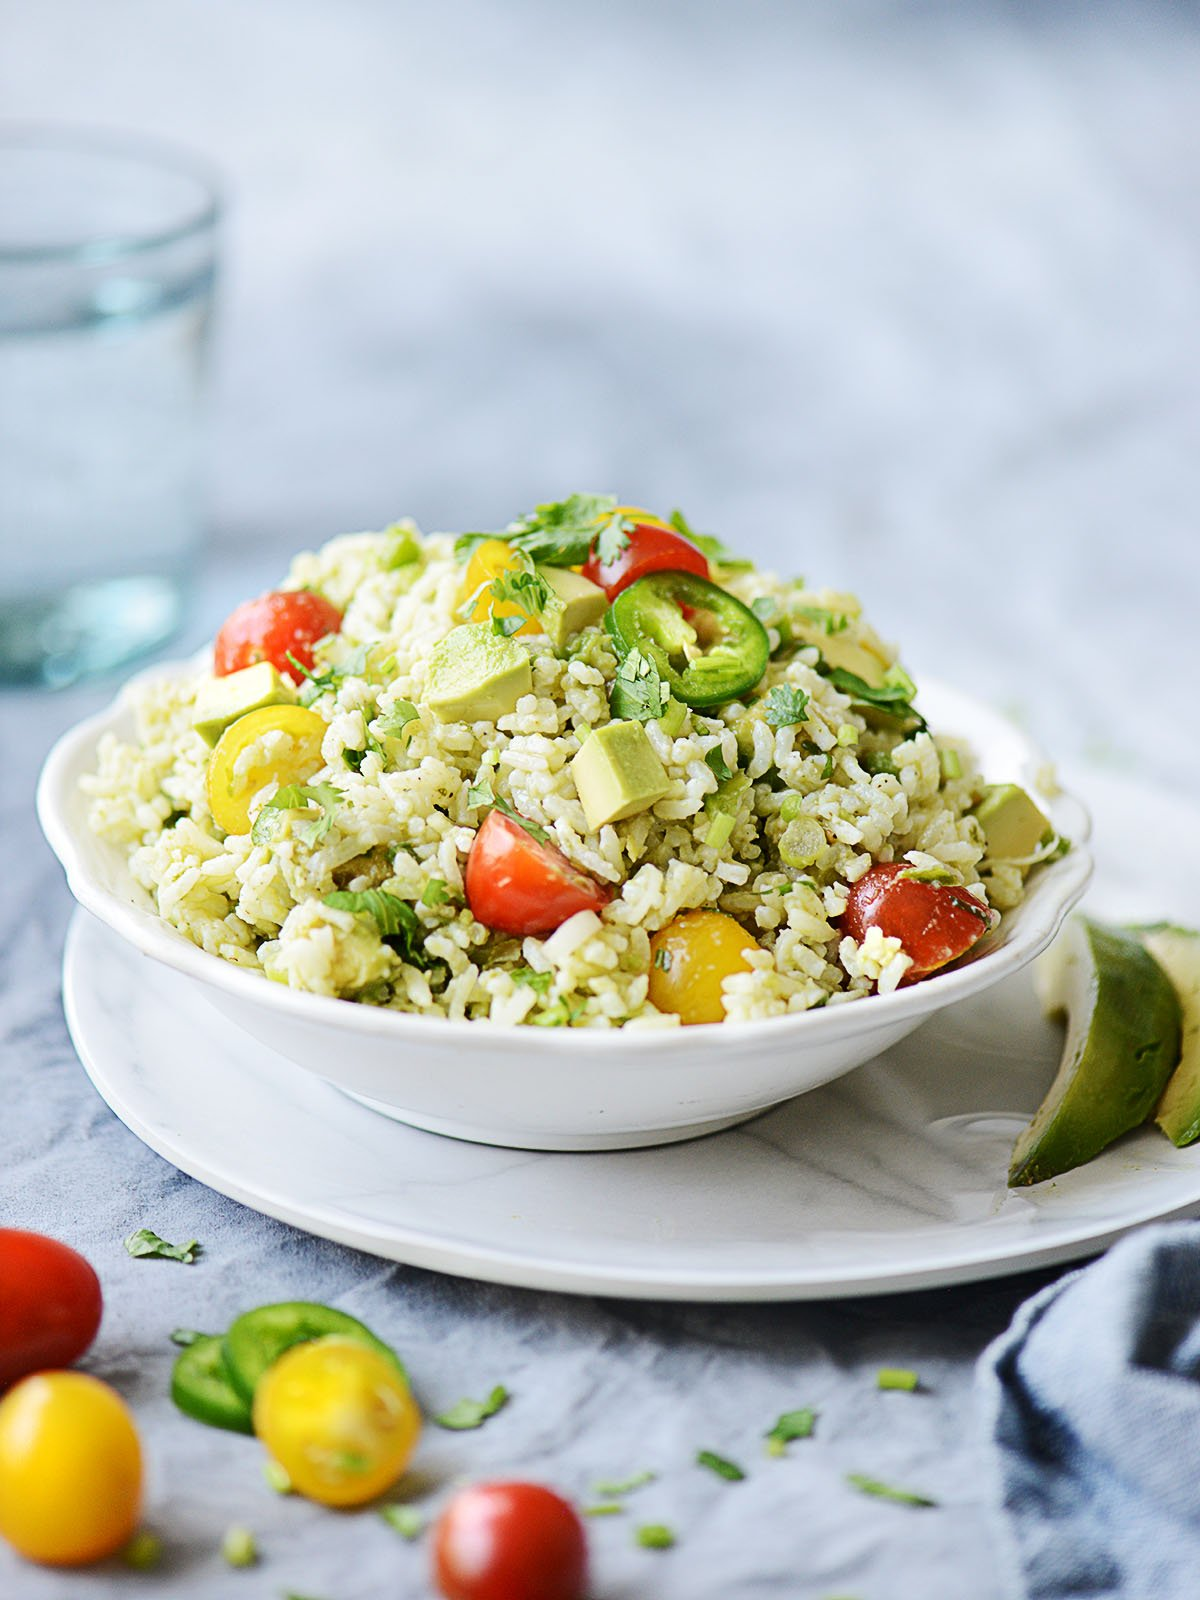 Green rice with tomatoes on a white bowl